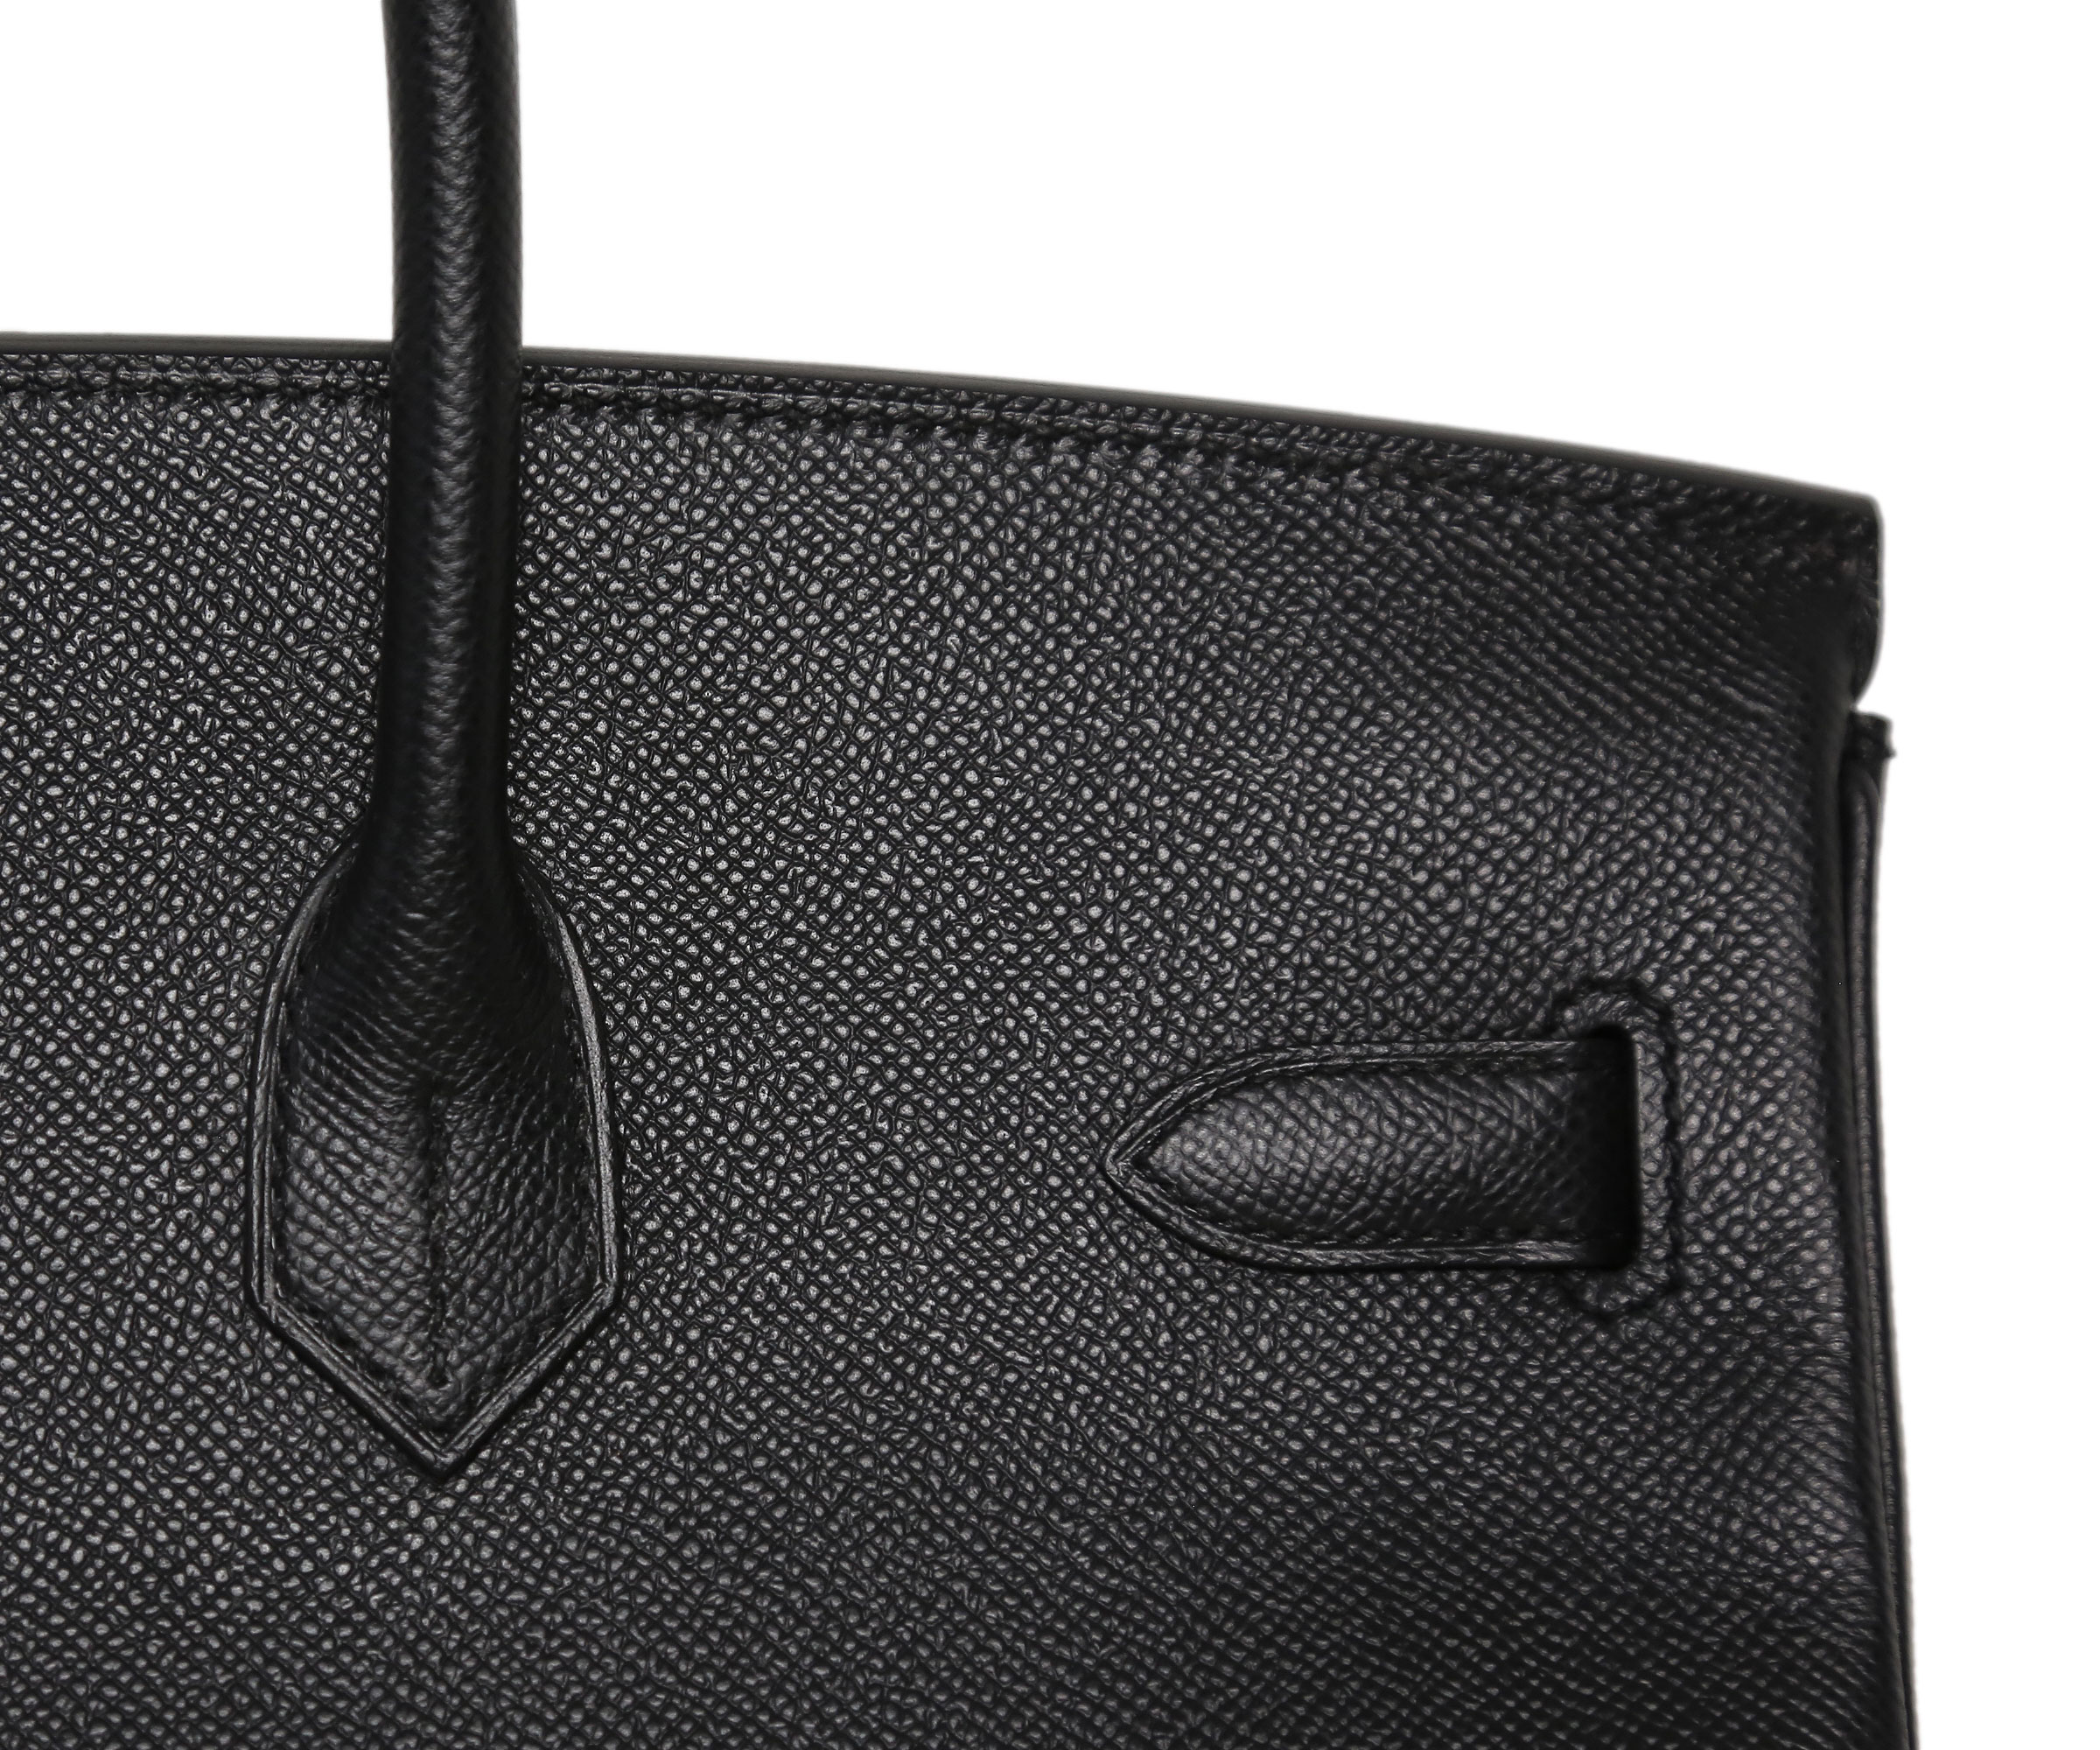 Hermes Birkin Black 35cm, Epsom with Palladium